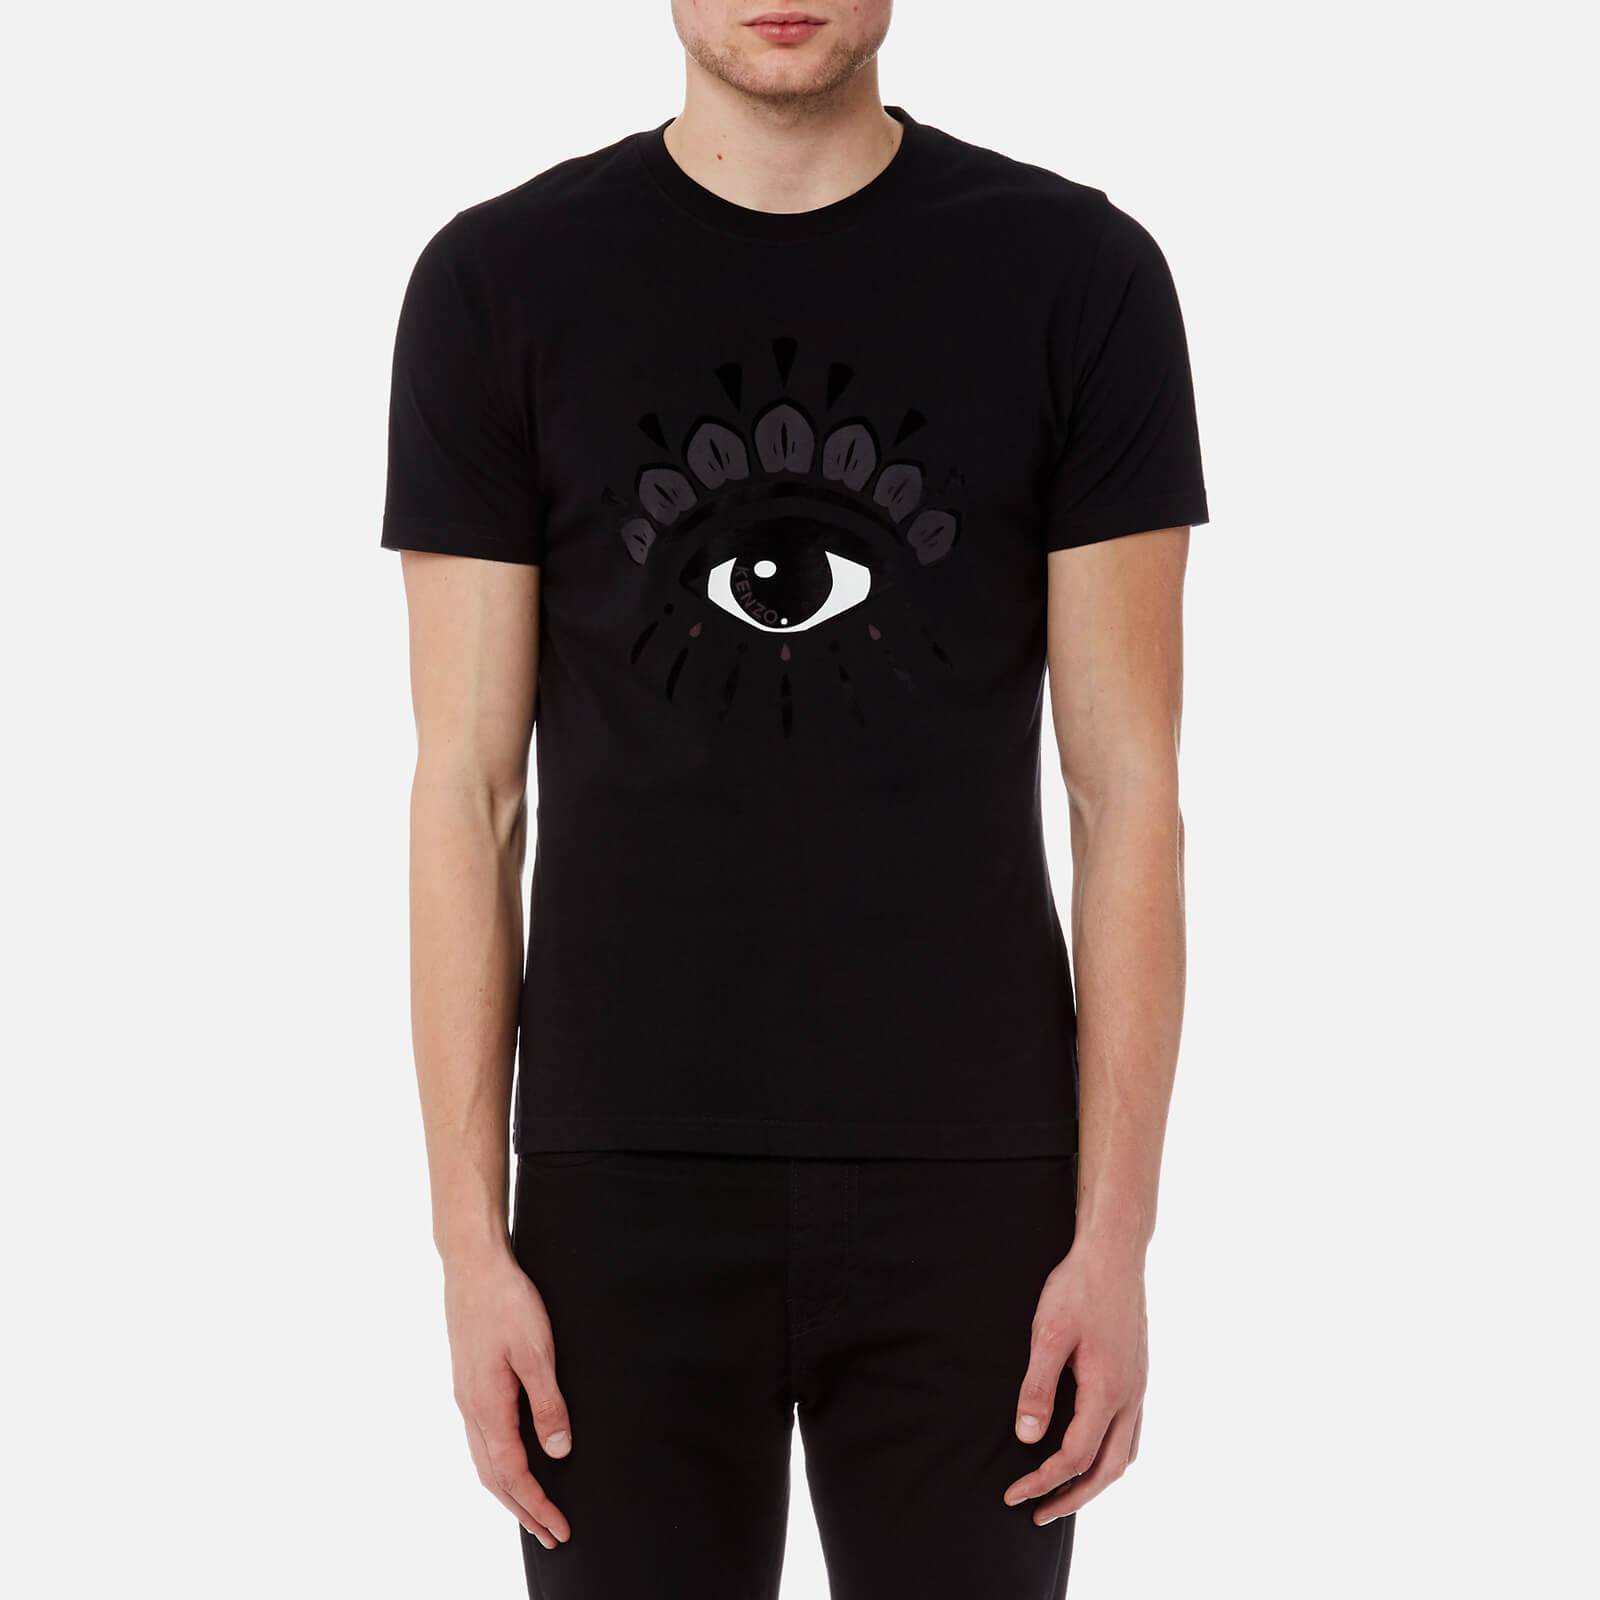 c8d8030c KENZO Men's Icons Eye T-Shirt - Black - Free UK Delivery over £50